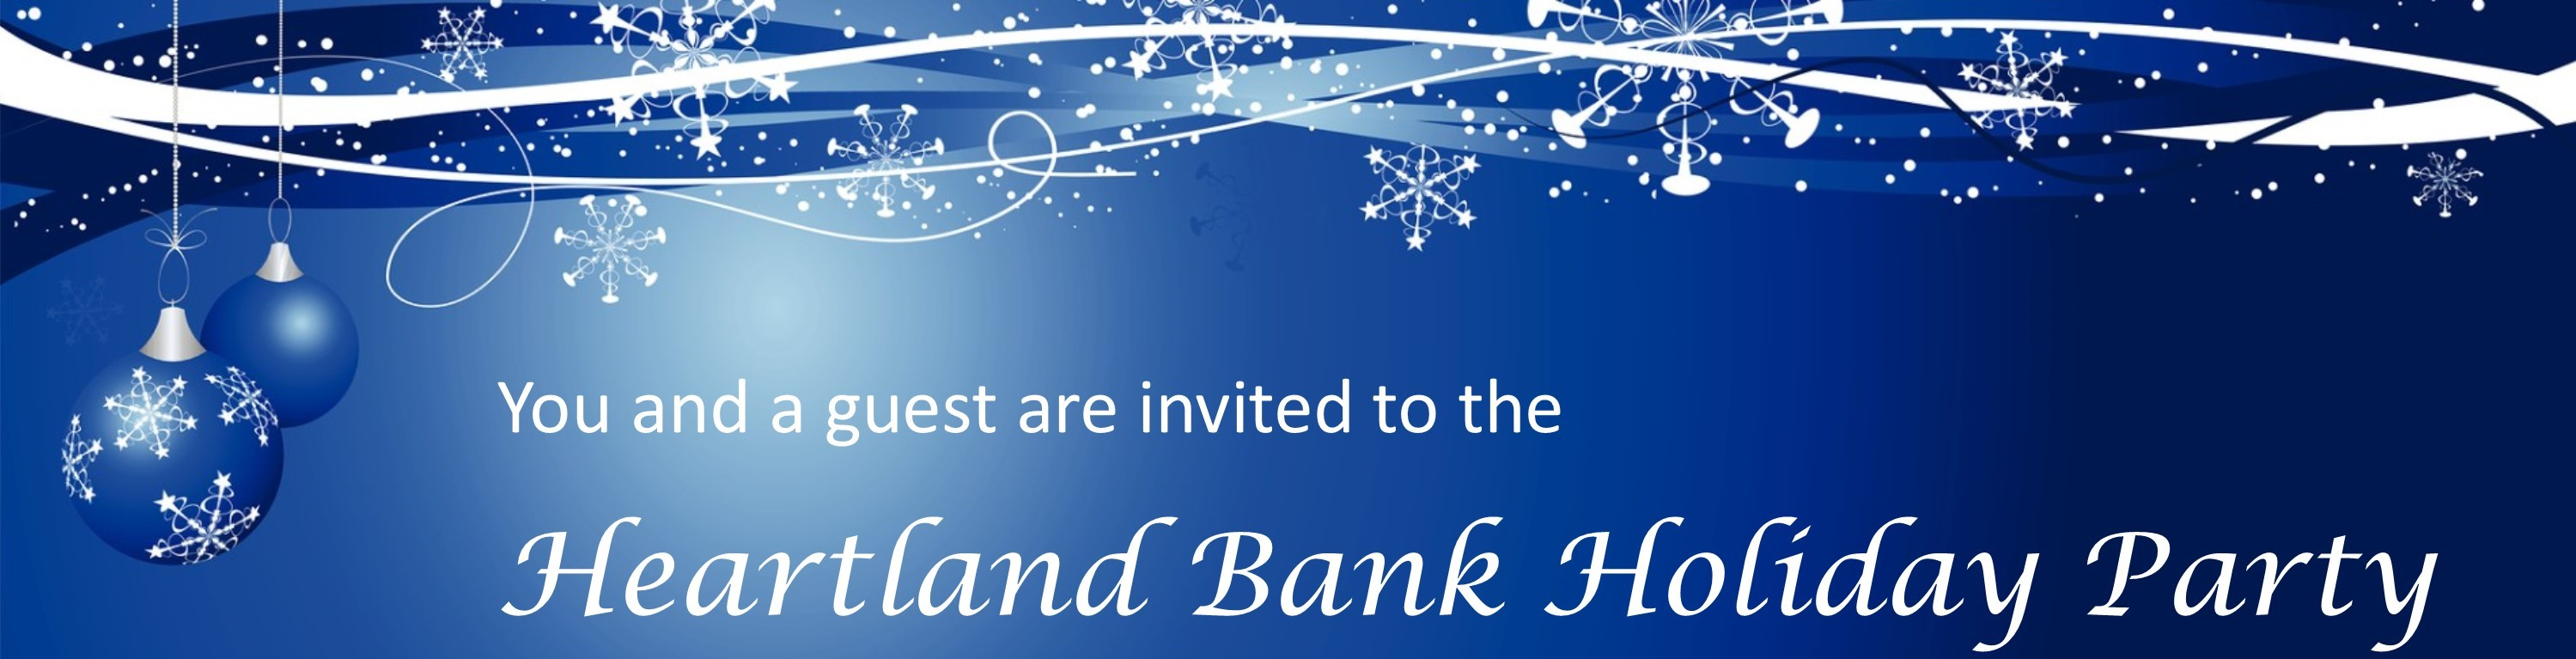 You and a guest are invited to the Heartland Bank Holiday Party